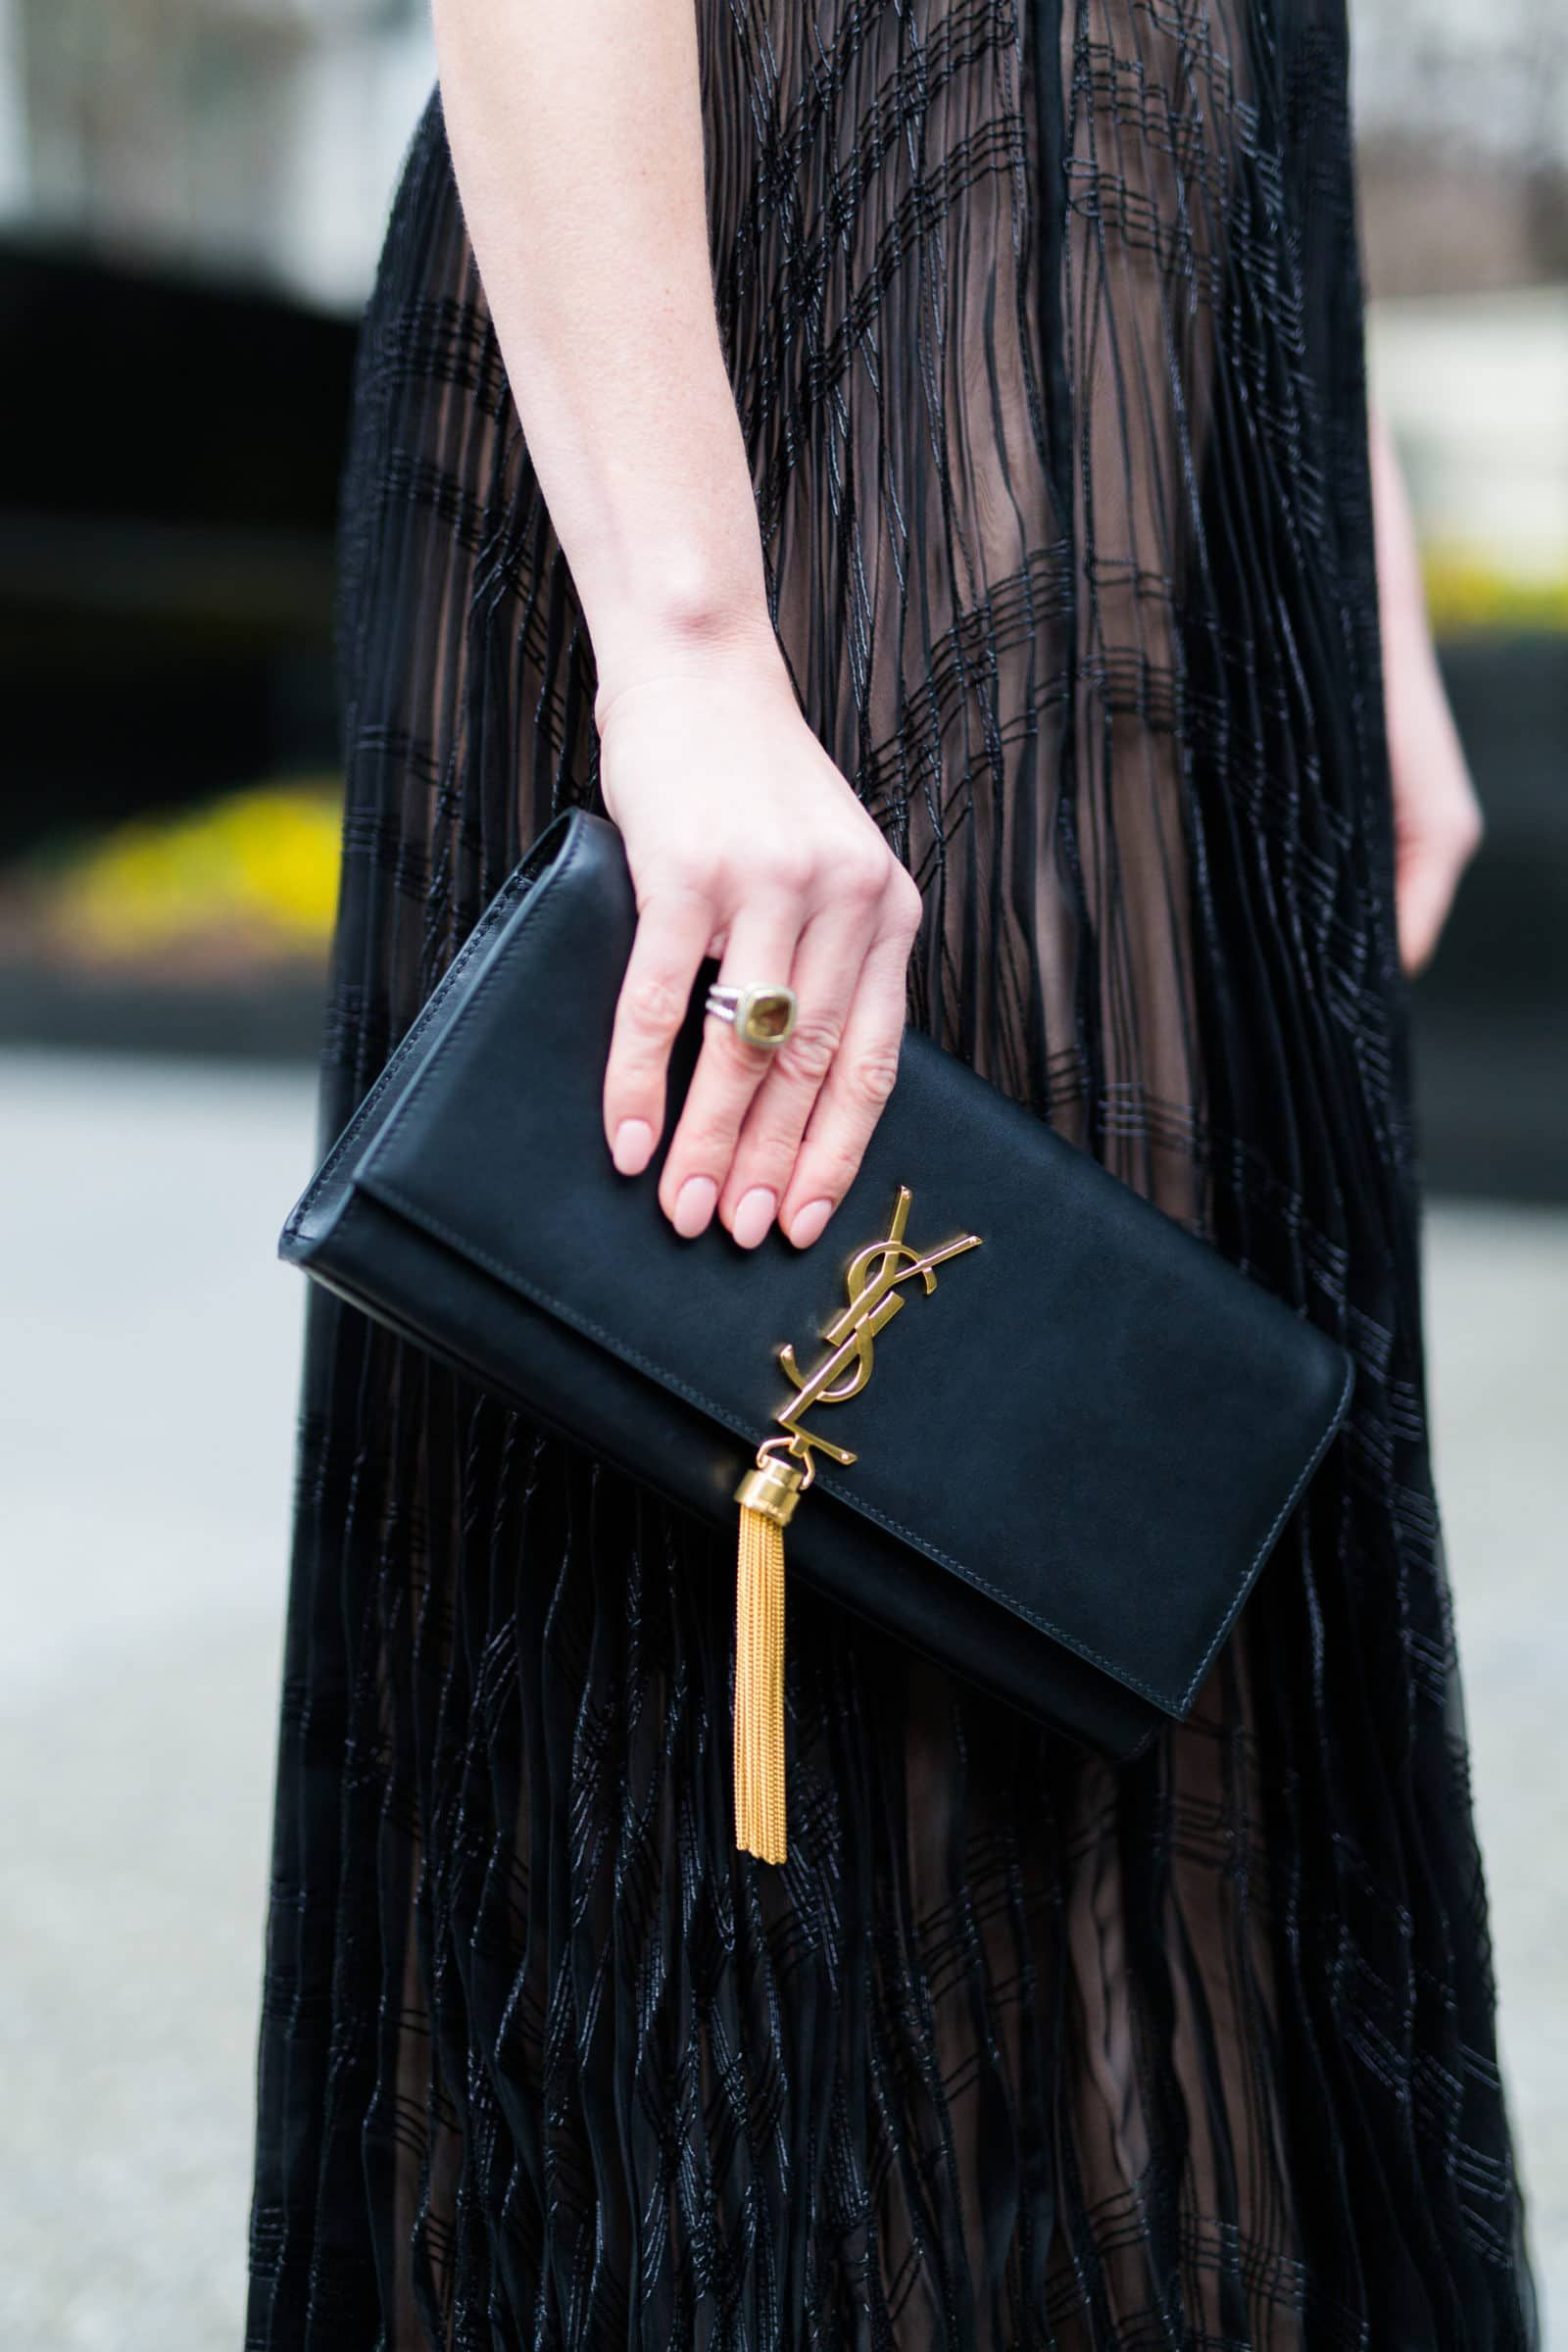 a3e0d7f0fb6 YSL tassel bag dupe - Get this glamorous bag for less | Purses | Ysl ...